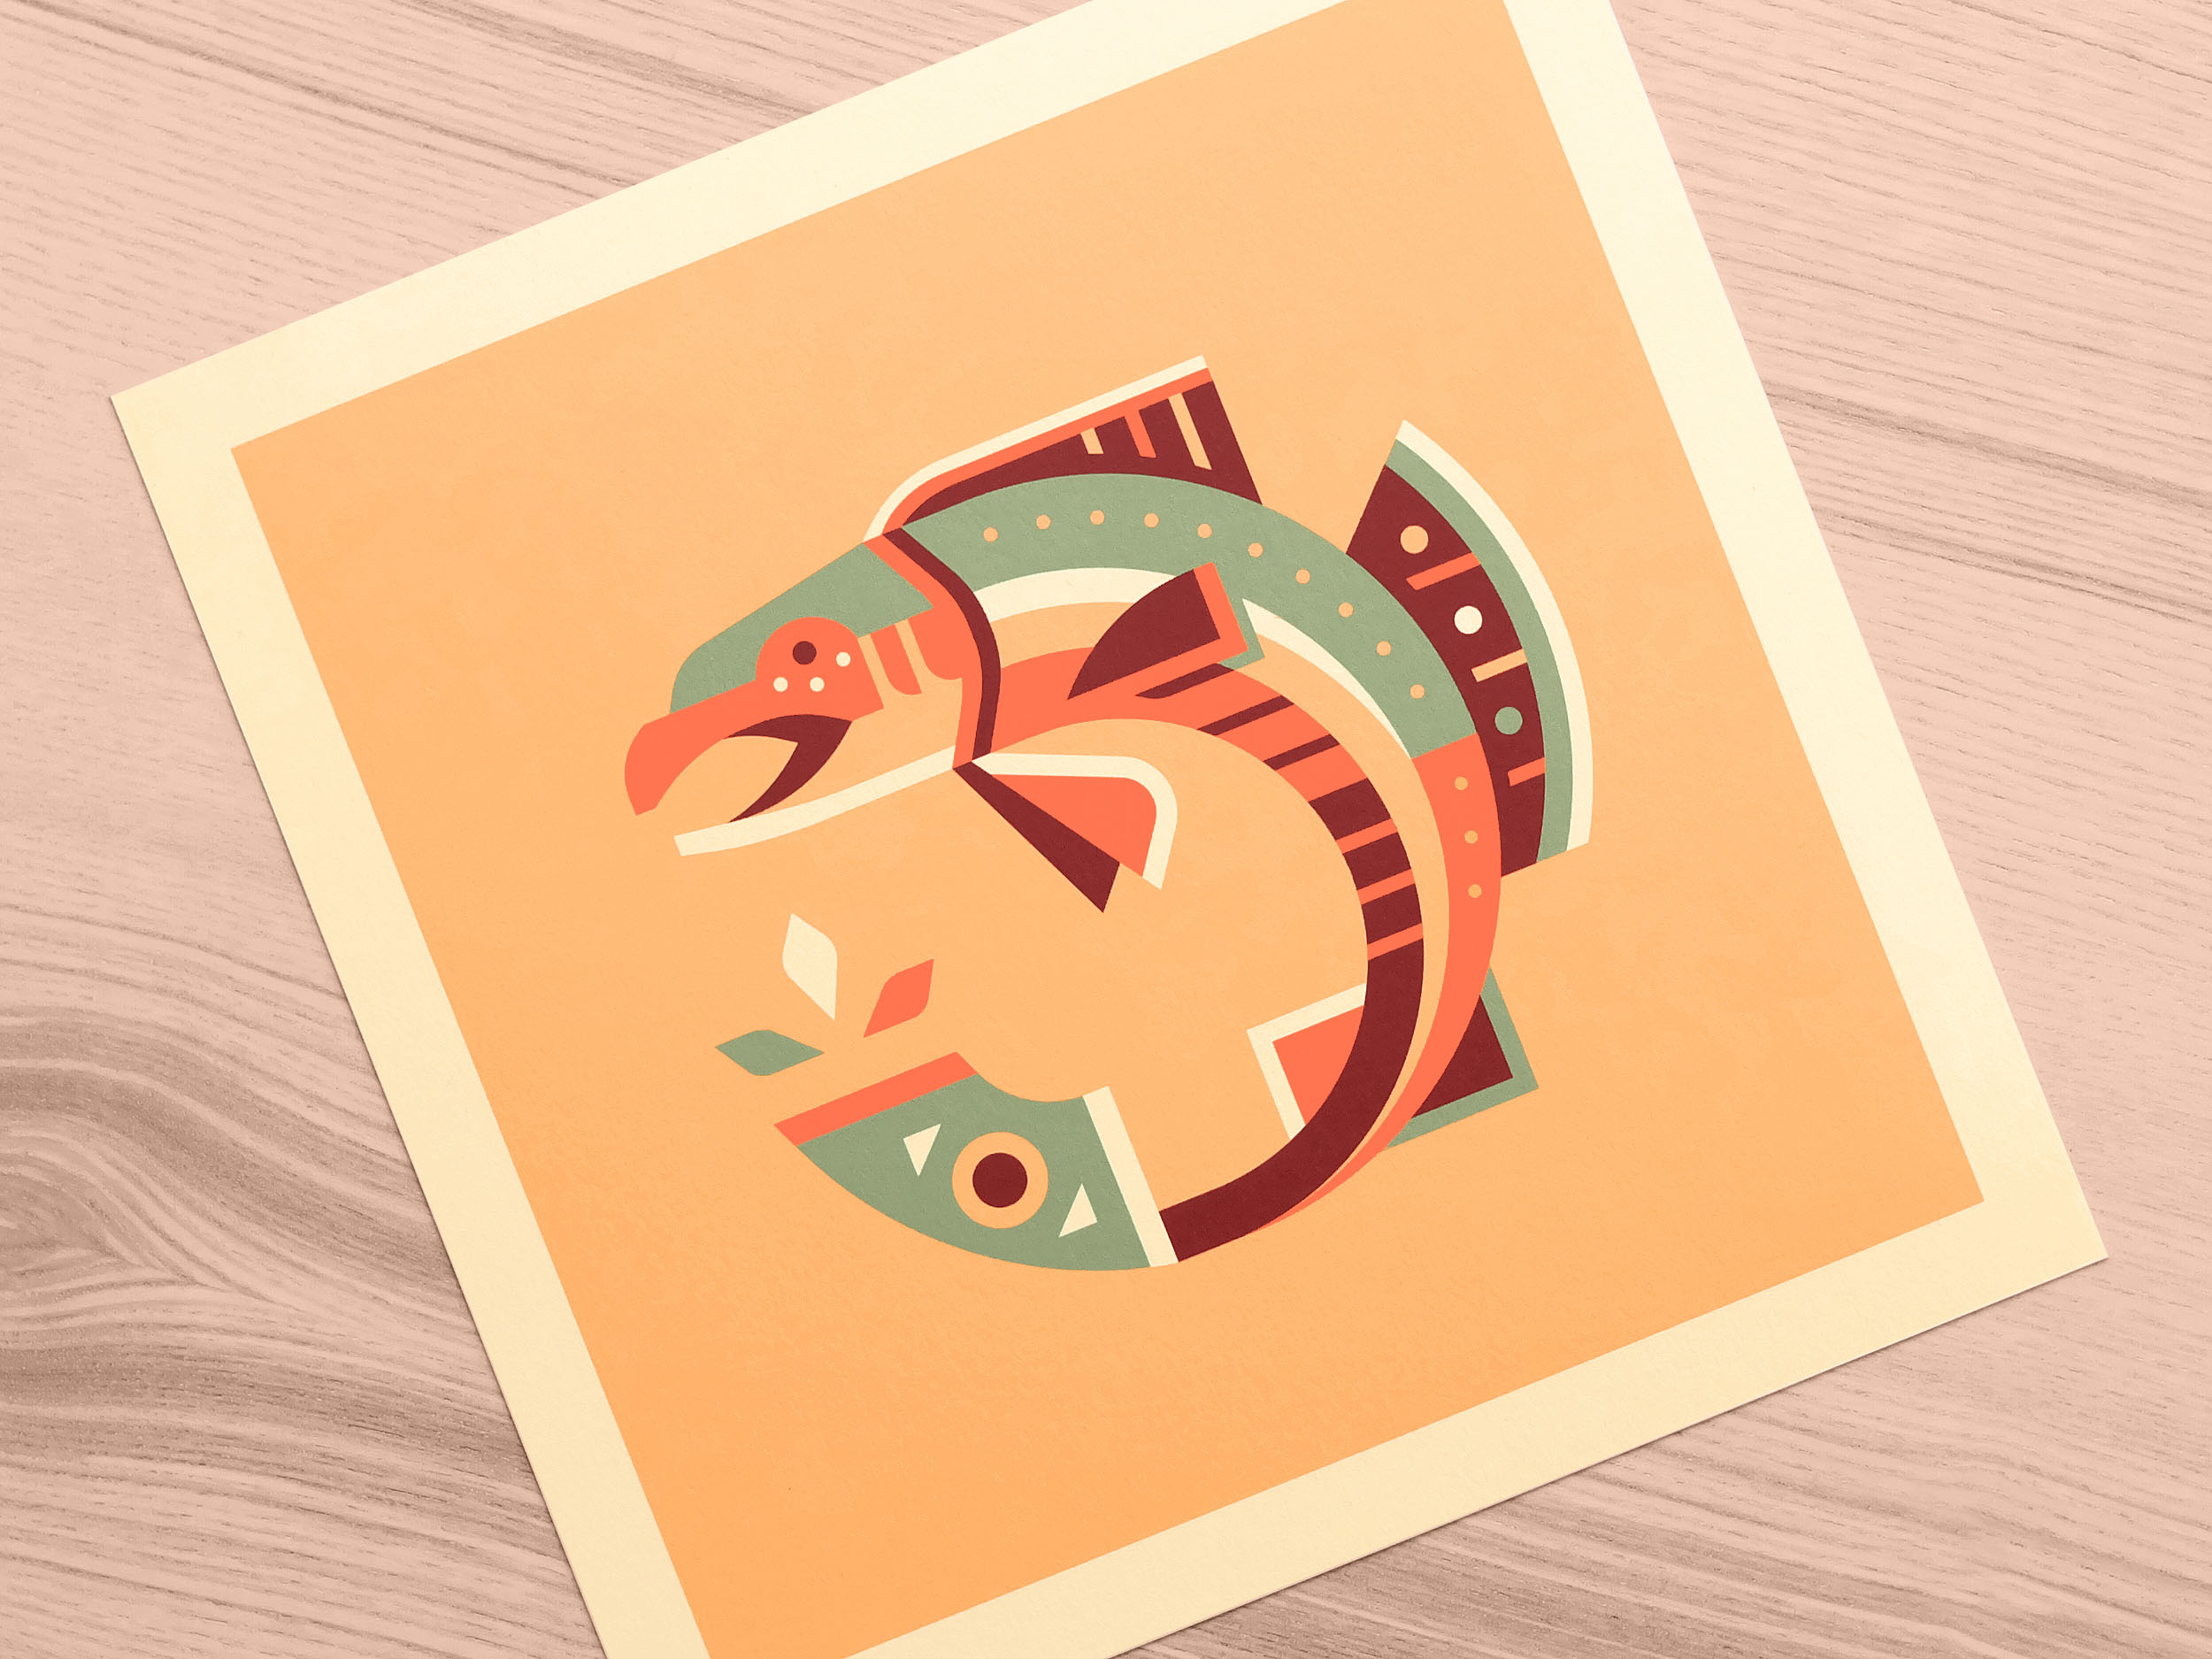 Salmon totem print photo by Matt Anderson and Canopy Design. Limited color, geometric pattern illustration with Navajo southwest art style.